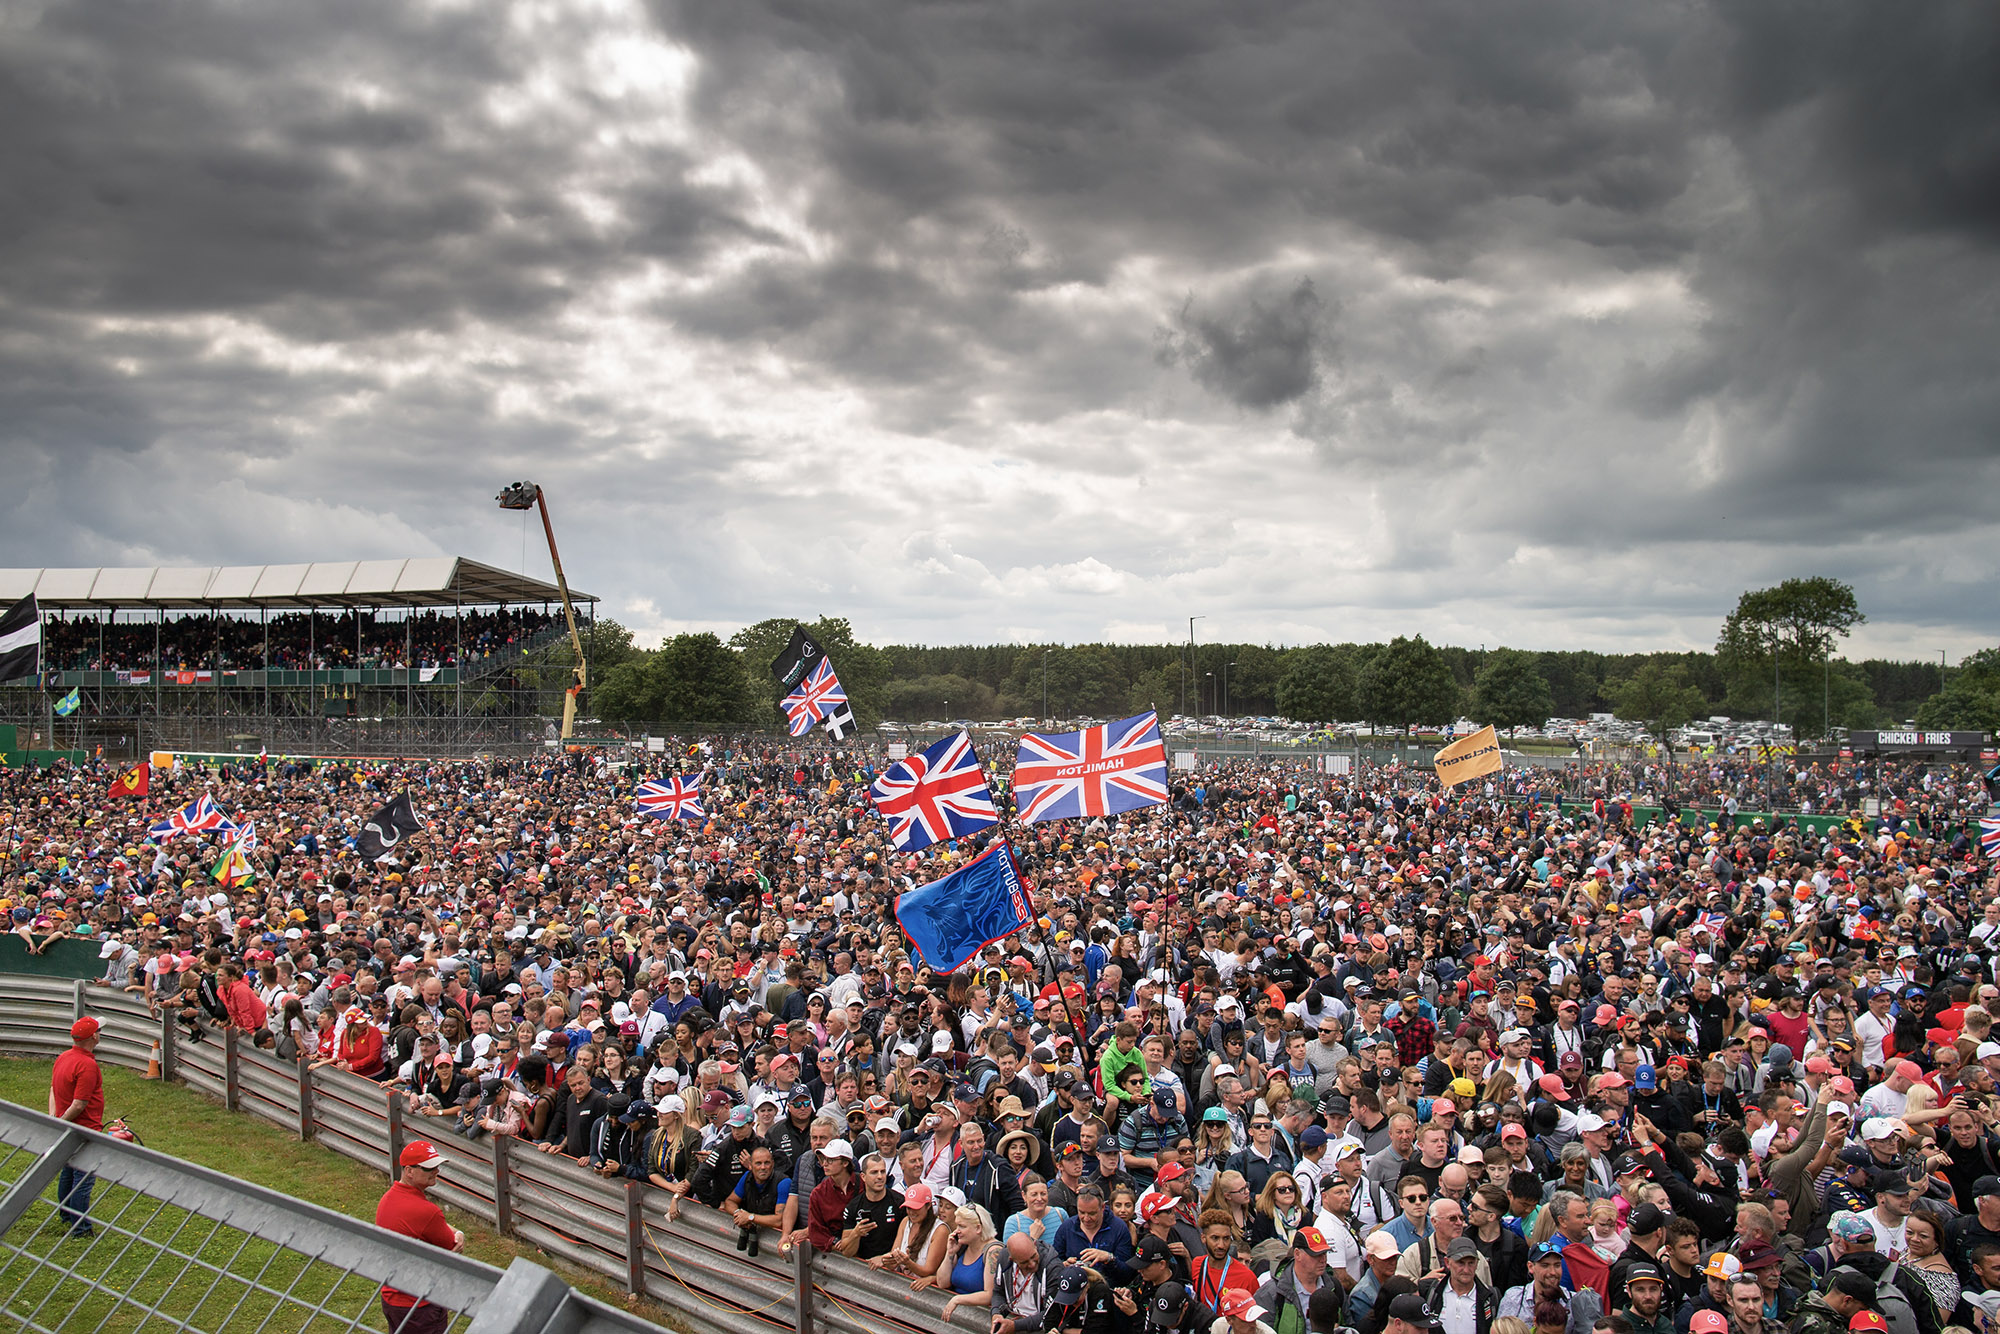 Crowd at Silverstone after the 2020 British Grand Prix